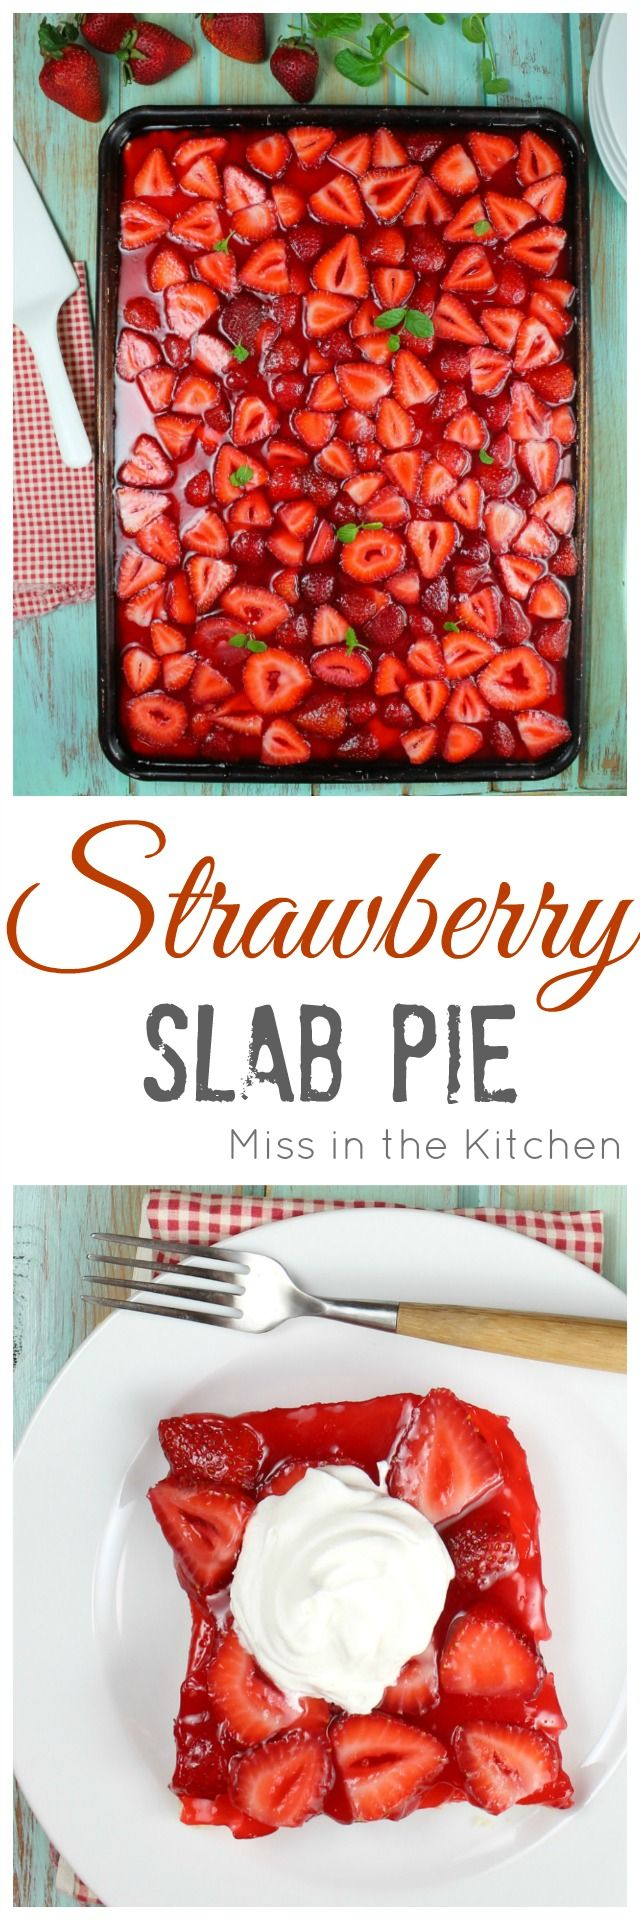 Strawberry Slab Pie Recipe for all of your summer get togethers and cookouts.  Made with fresh strawberrie